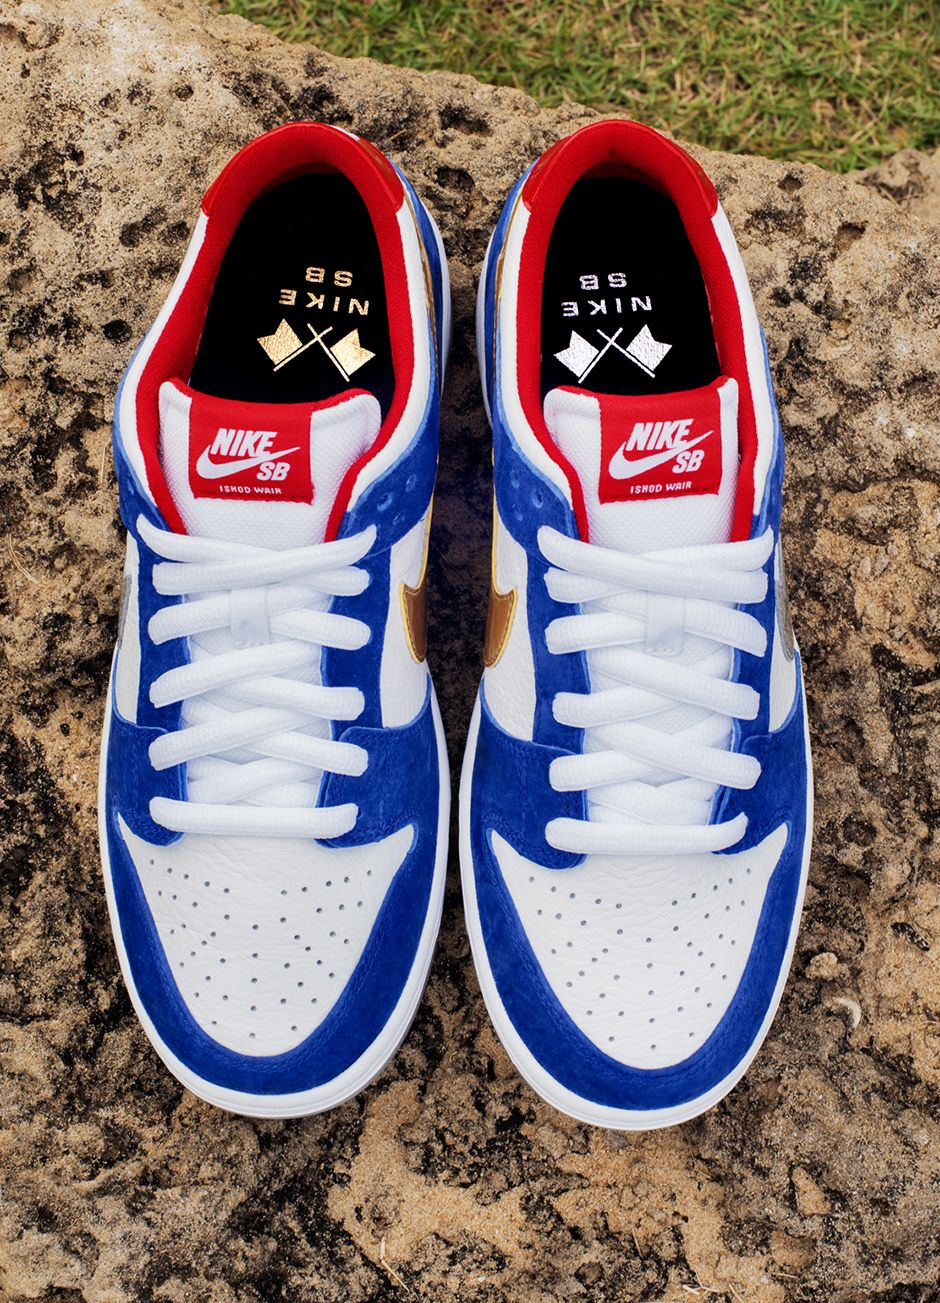 nike-sb-dunk-low-pro-ishod-wair-qs-release-details-05